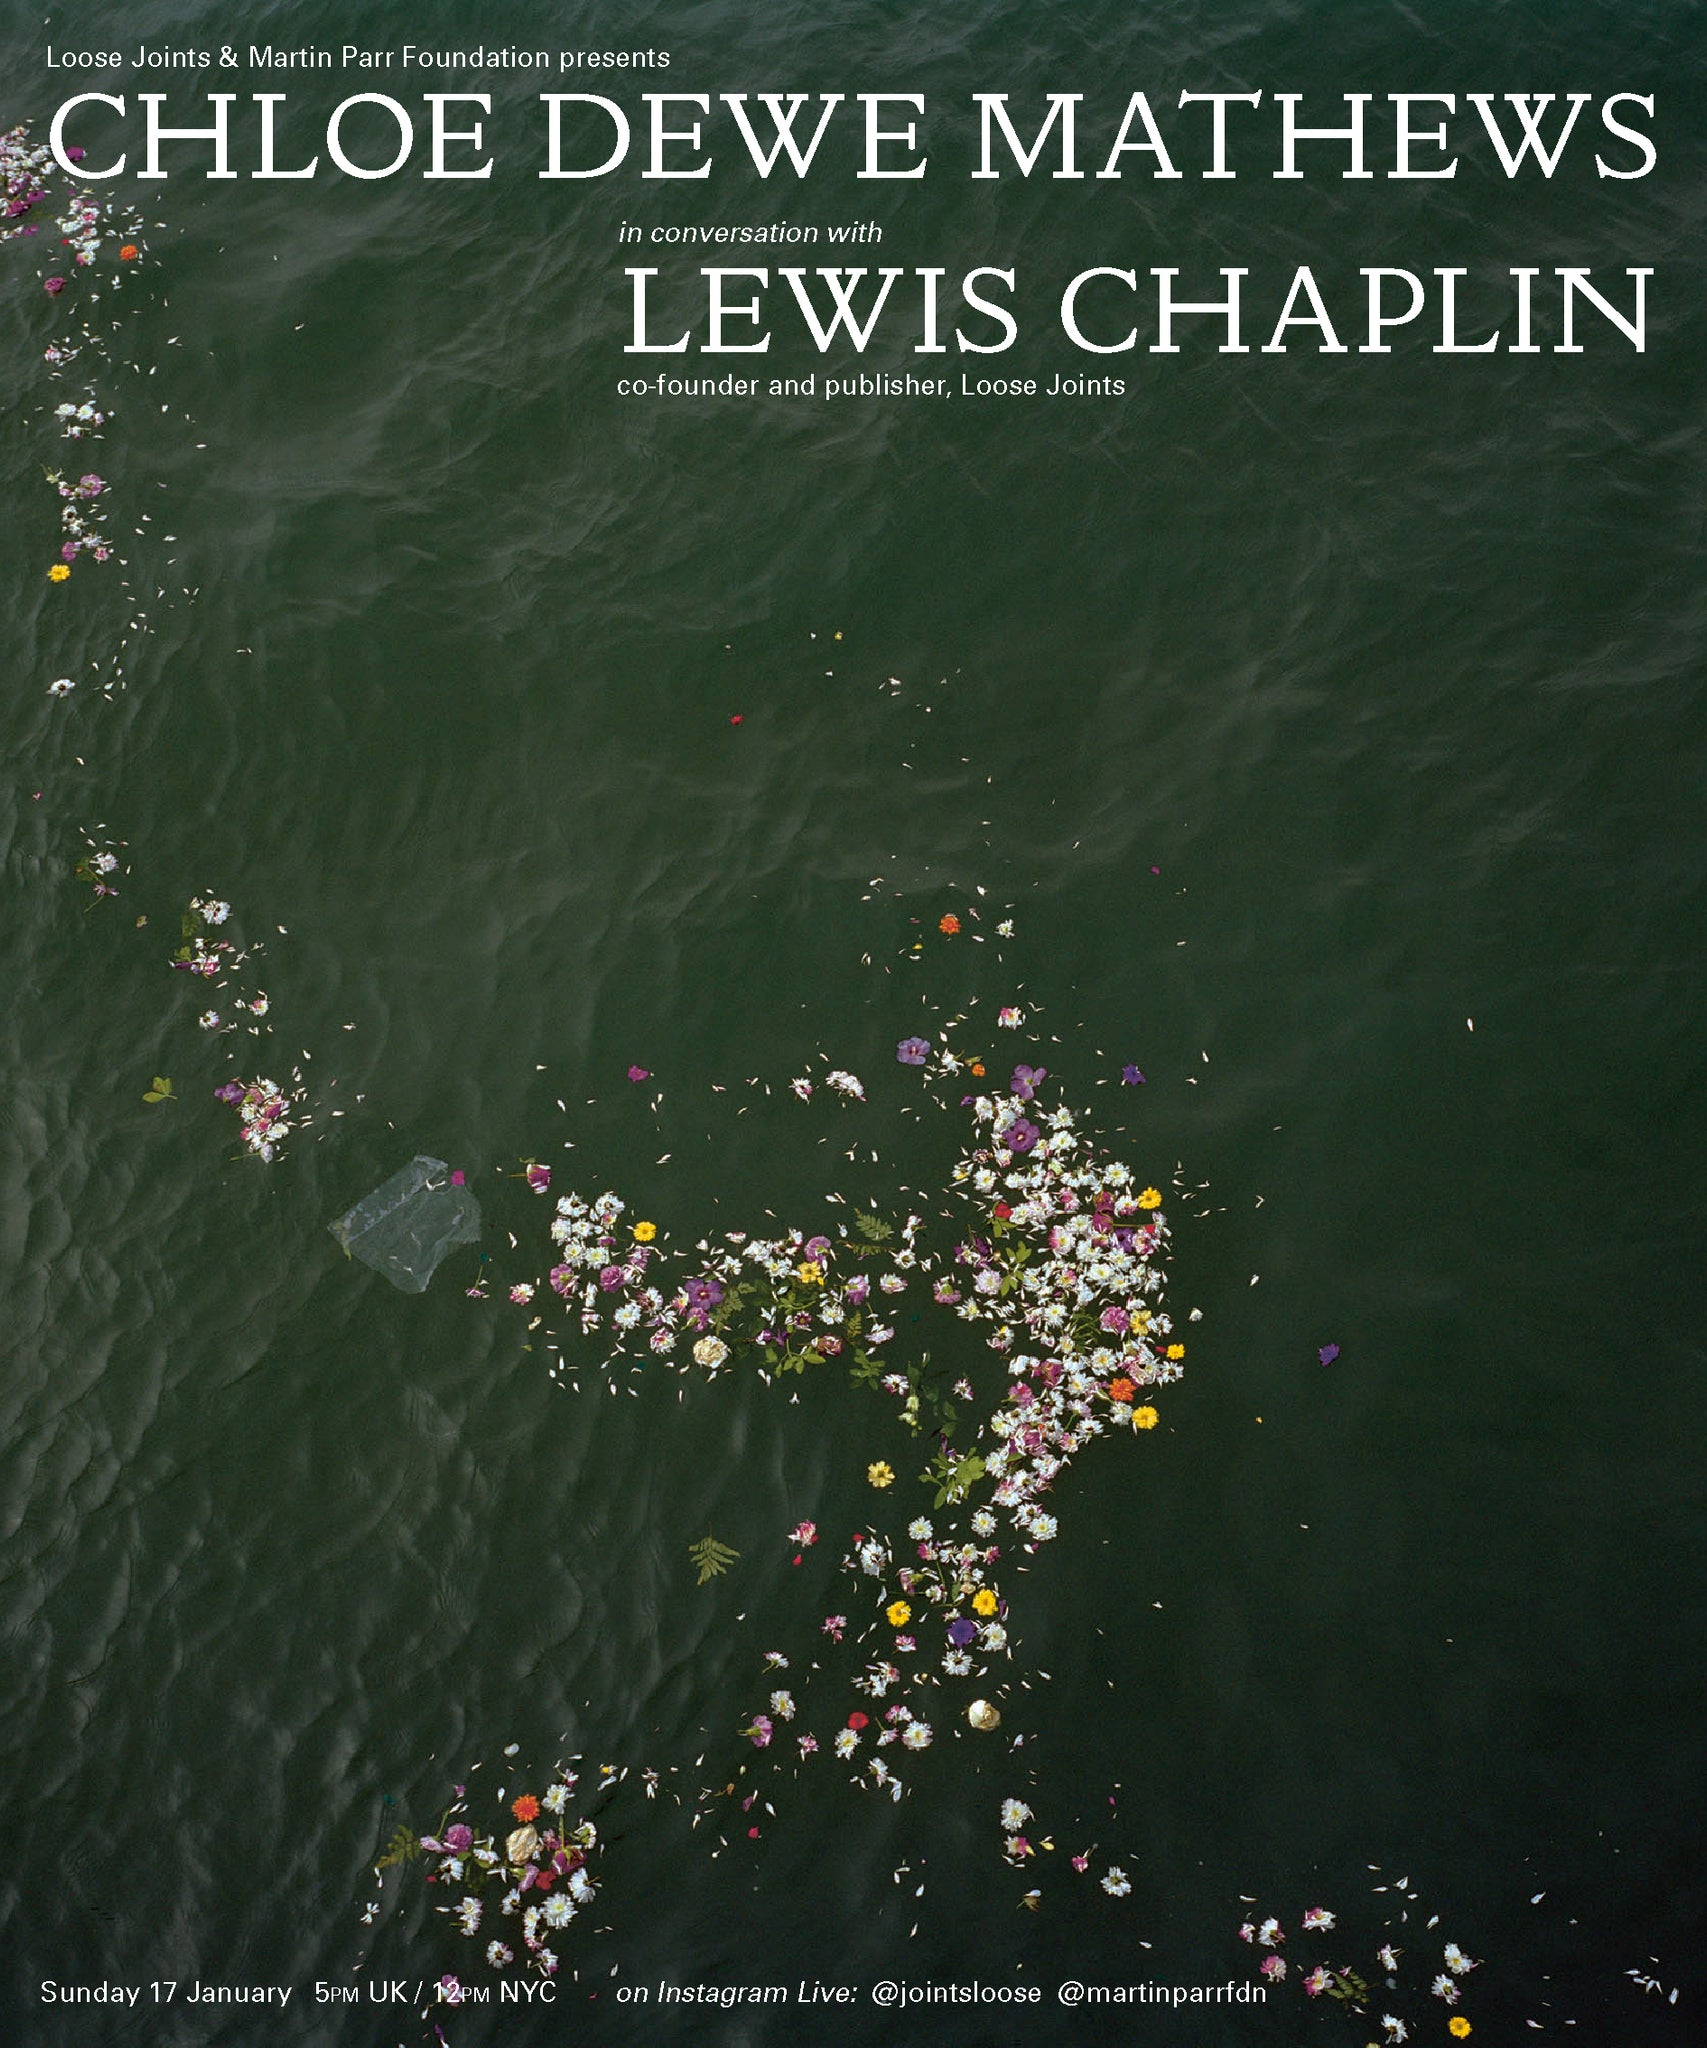 Chloe Dewe Mathews in conversation with Lewis Chaplin, Sunday 17 Jan 5PM